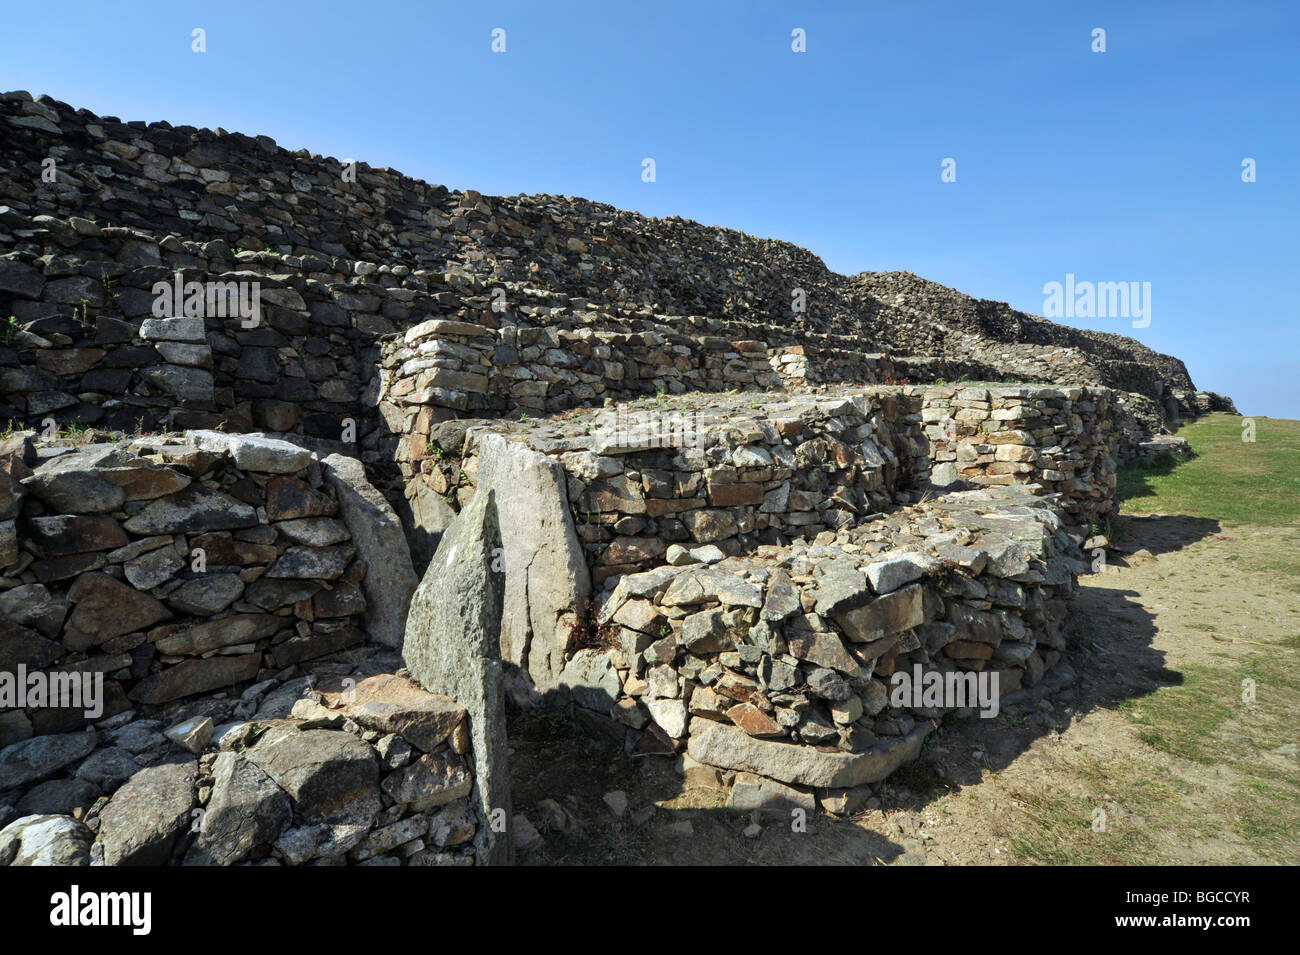 The Cairn of Barnenez / Barnenez Tumulus / Mound, a Neolithic monument near Plouezoc'h, Finistère, Brittany, - Stock Image